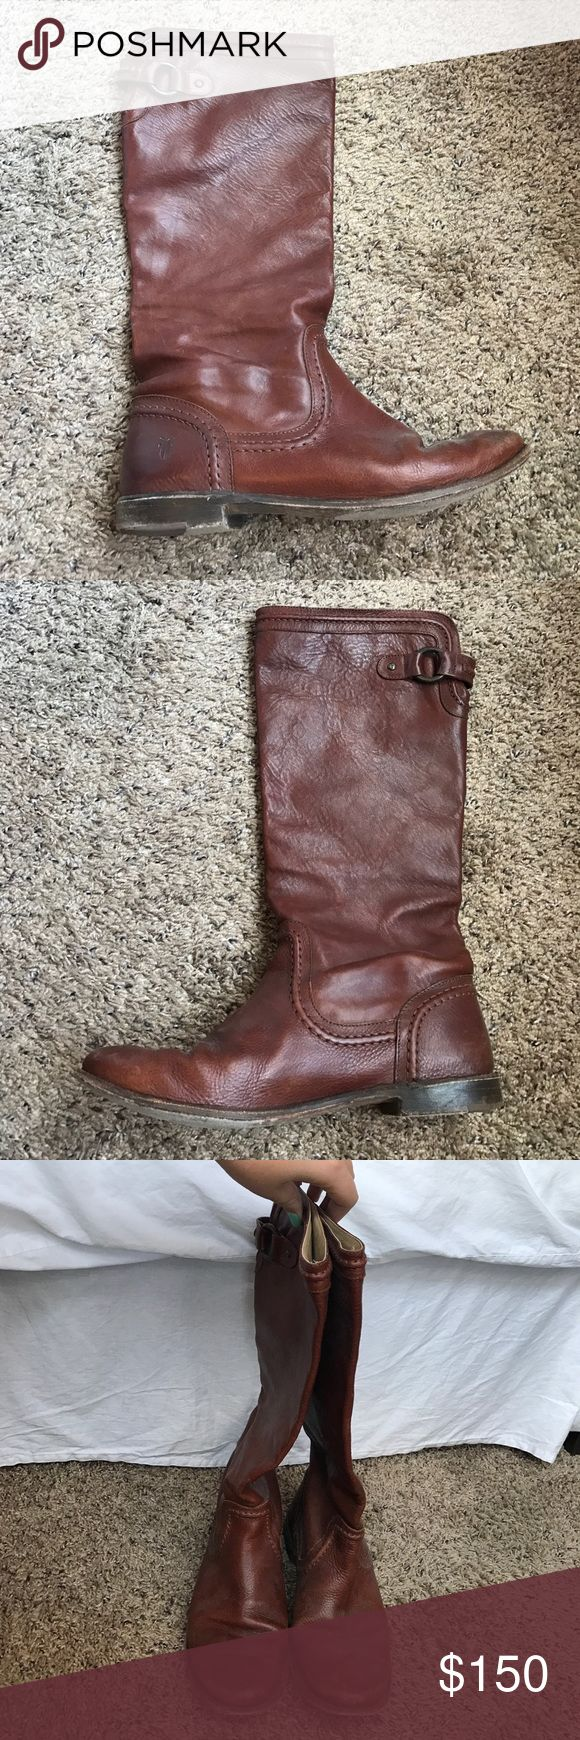 Frye Tall Boots Frye tall boots. Perfect for summer dresses and for fall. Soft leather. Leather soles. Beautiful stitching. Frye Shoes Ankle Boots & Booties